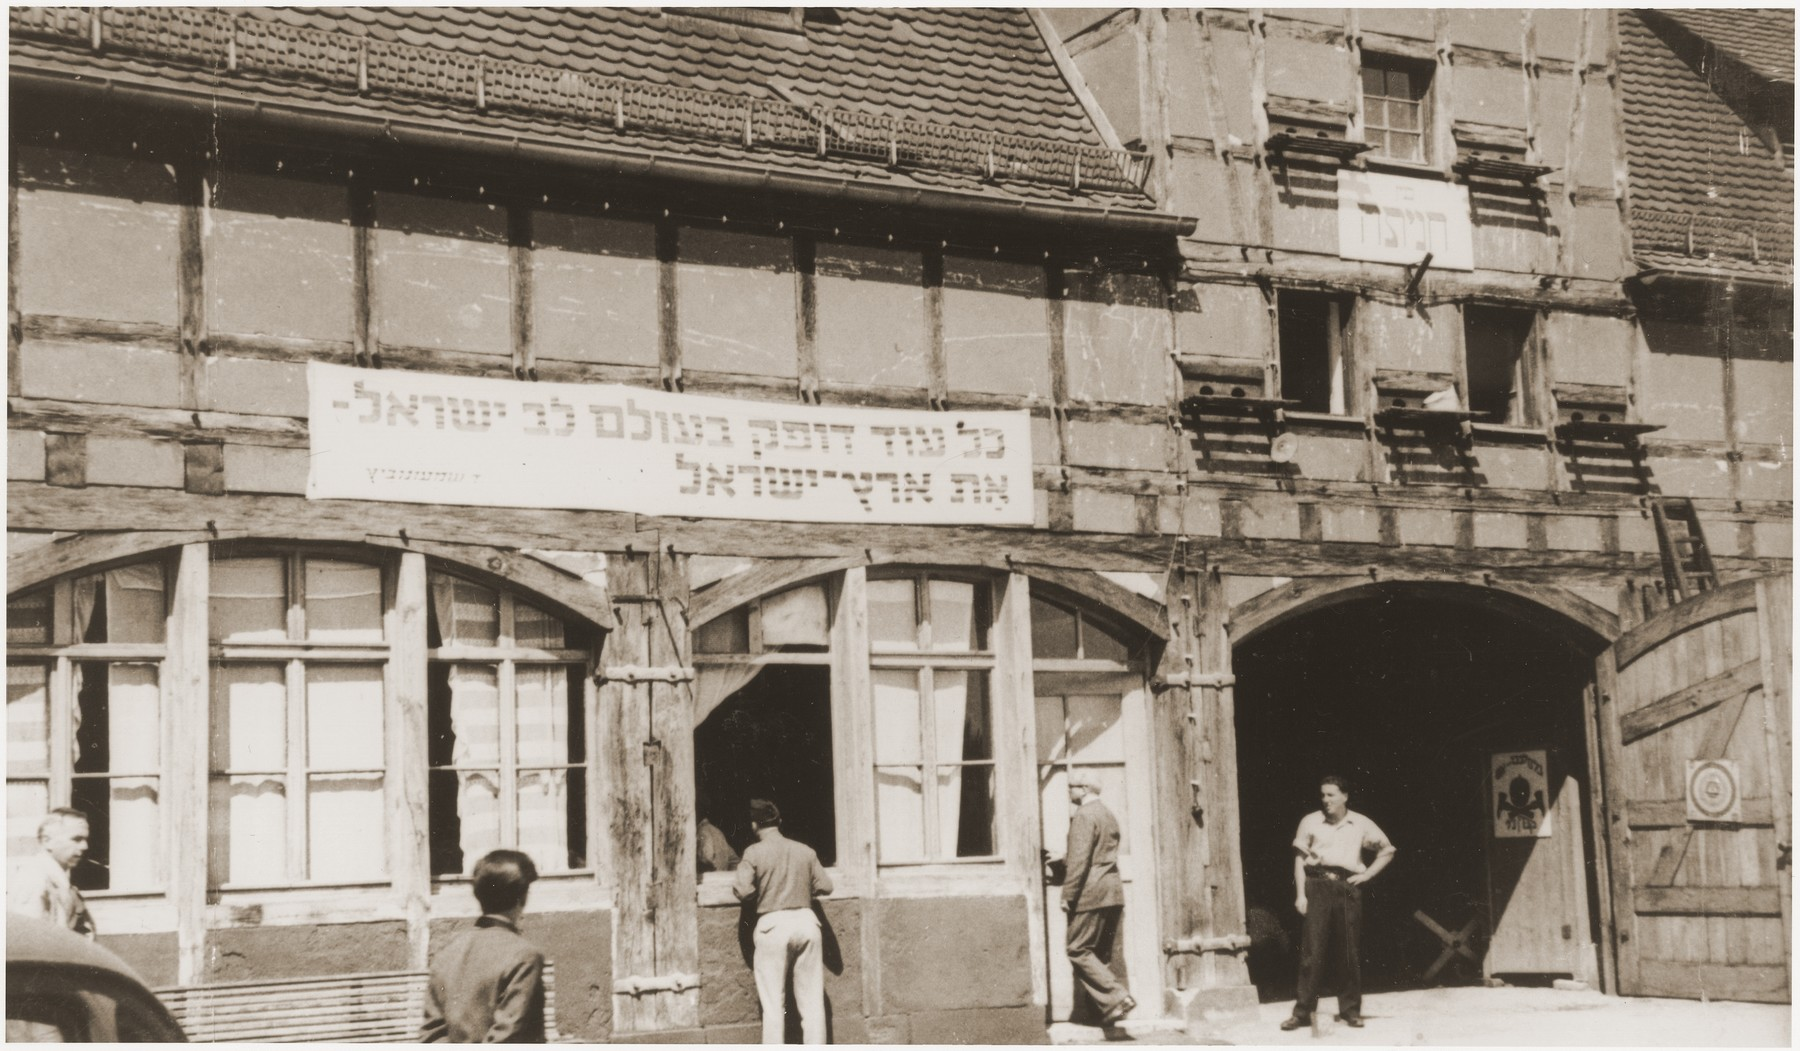 View of one of the main buildings at the Kibbutz Nili hachshara (Zionist collective) in Pleikershof, Germany